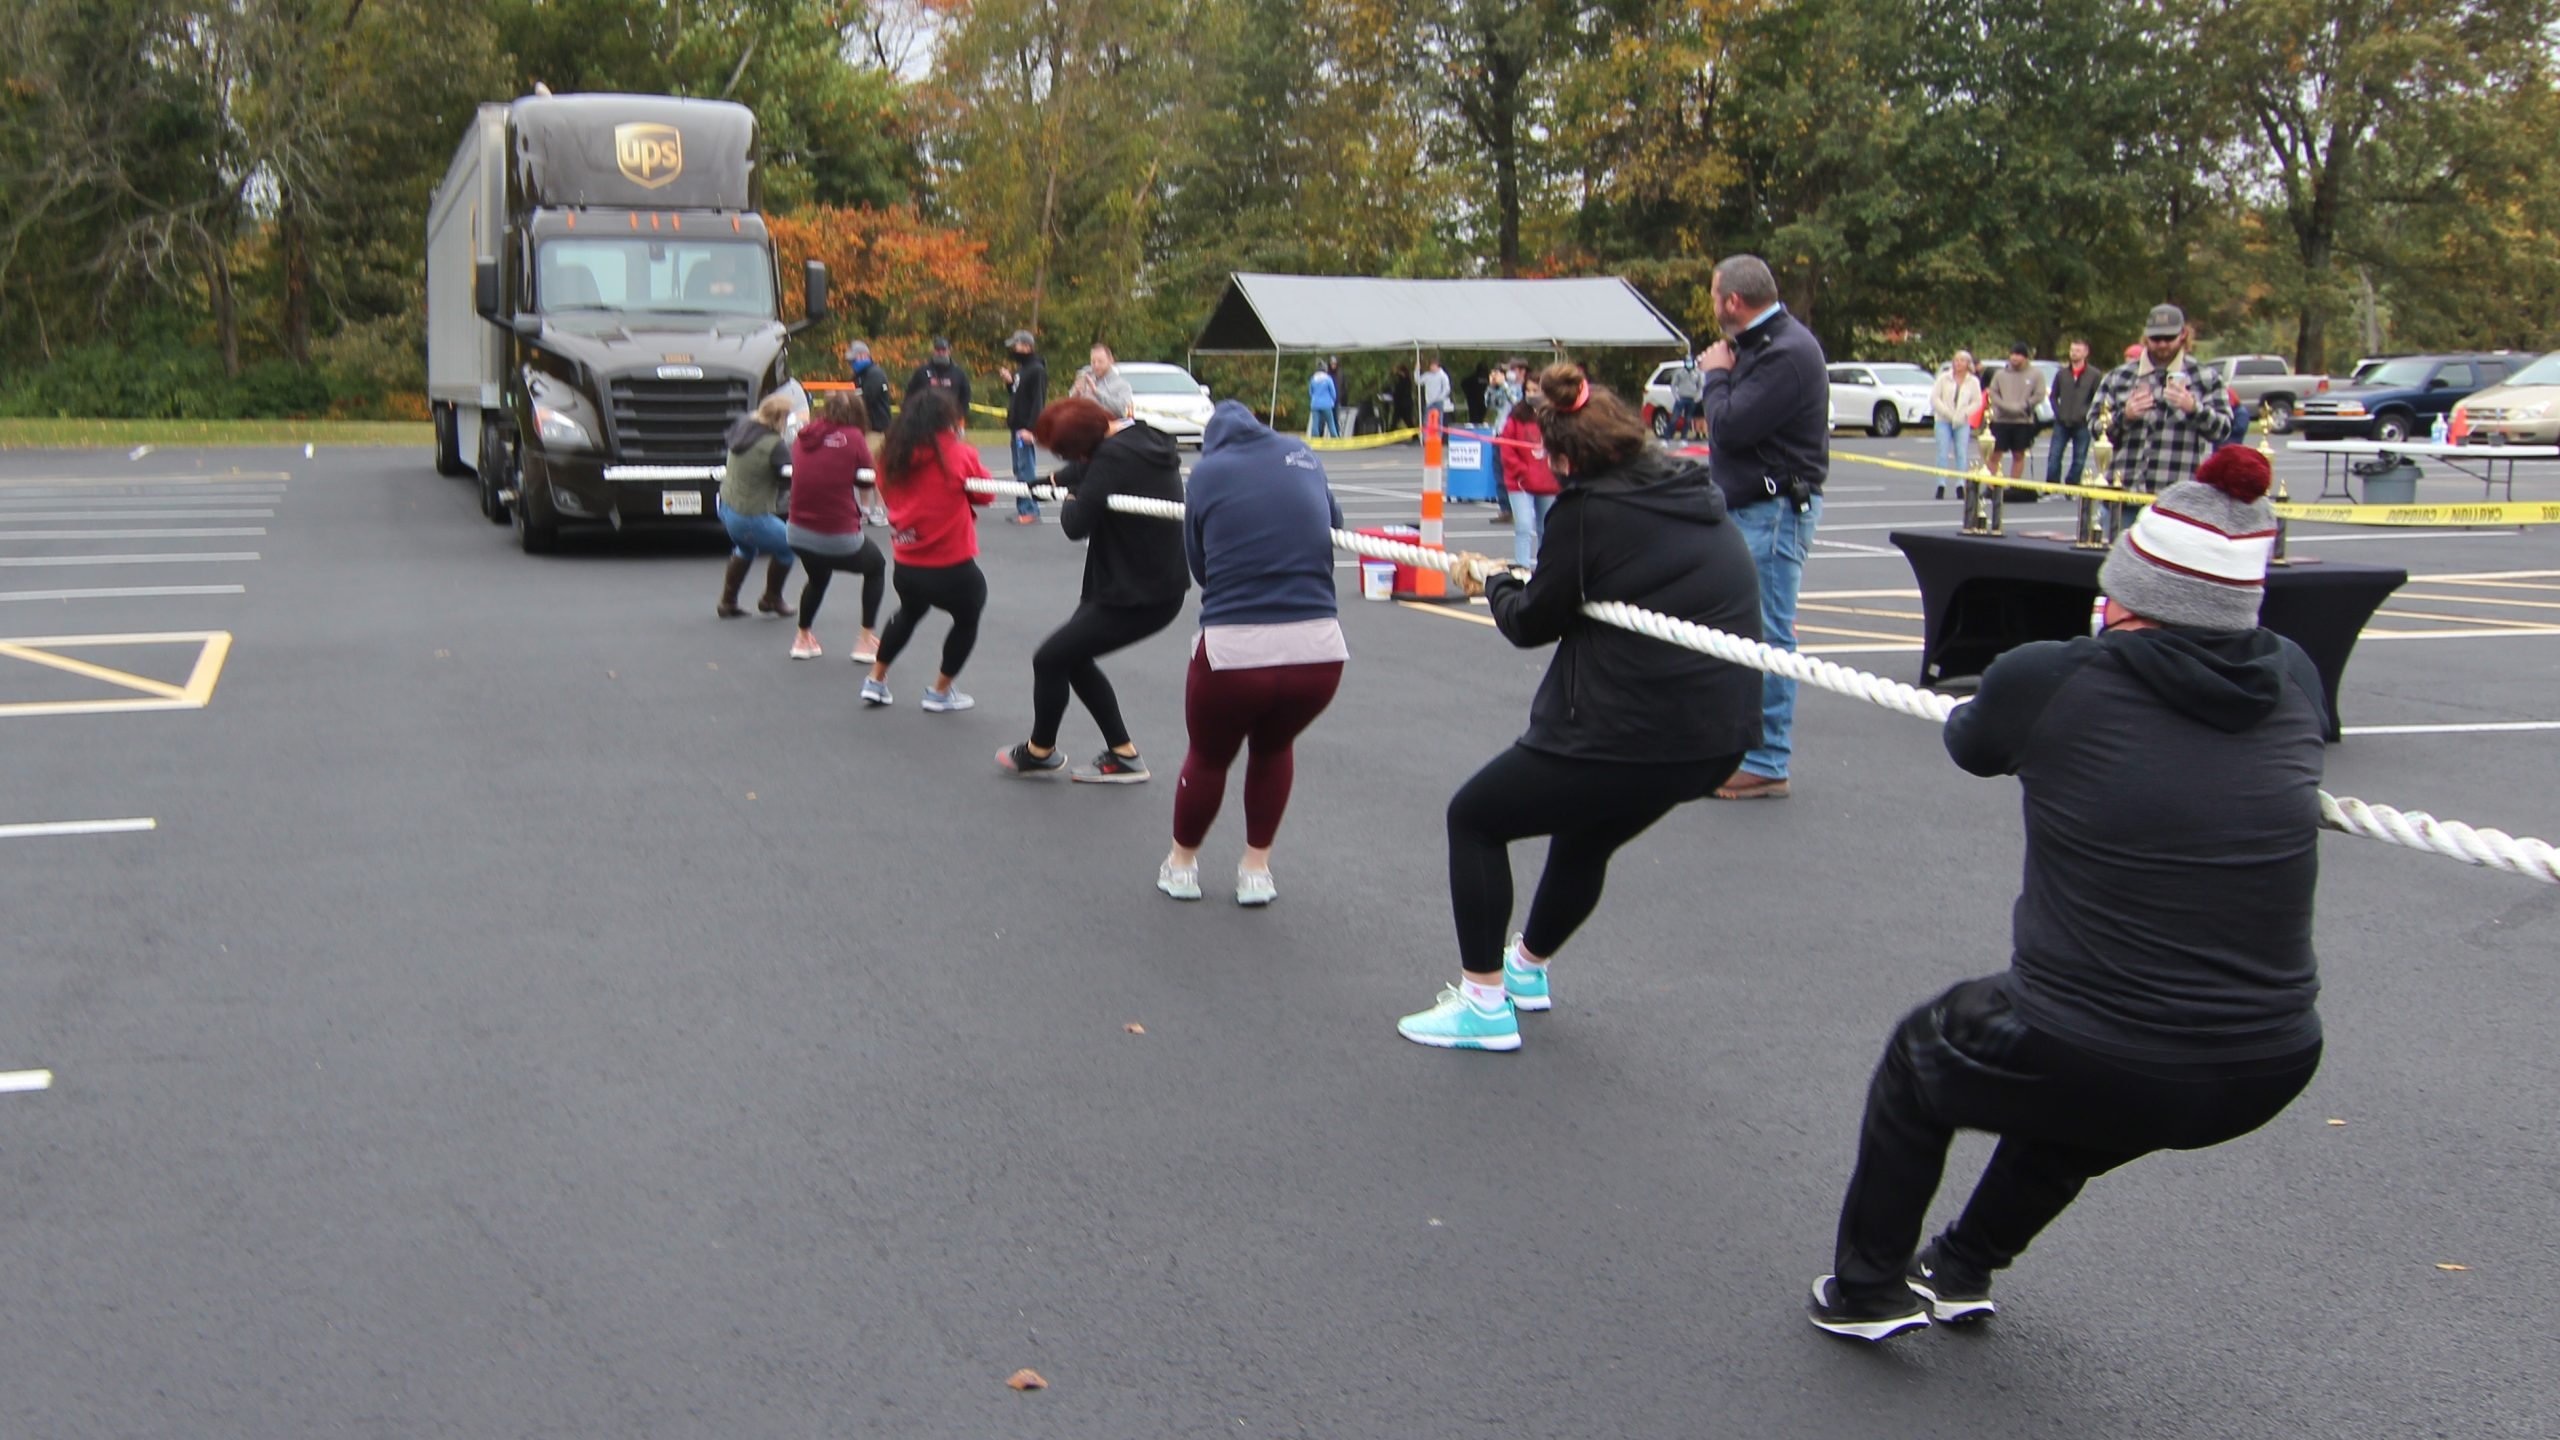 People pulling a UPS truck at the Paducah Big Brown Truck Pull